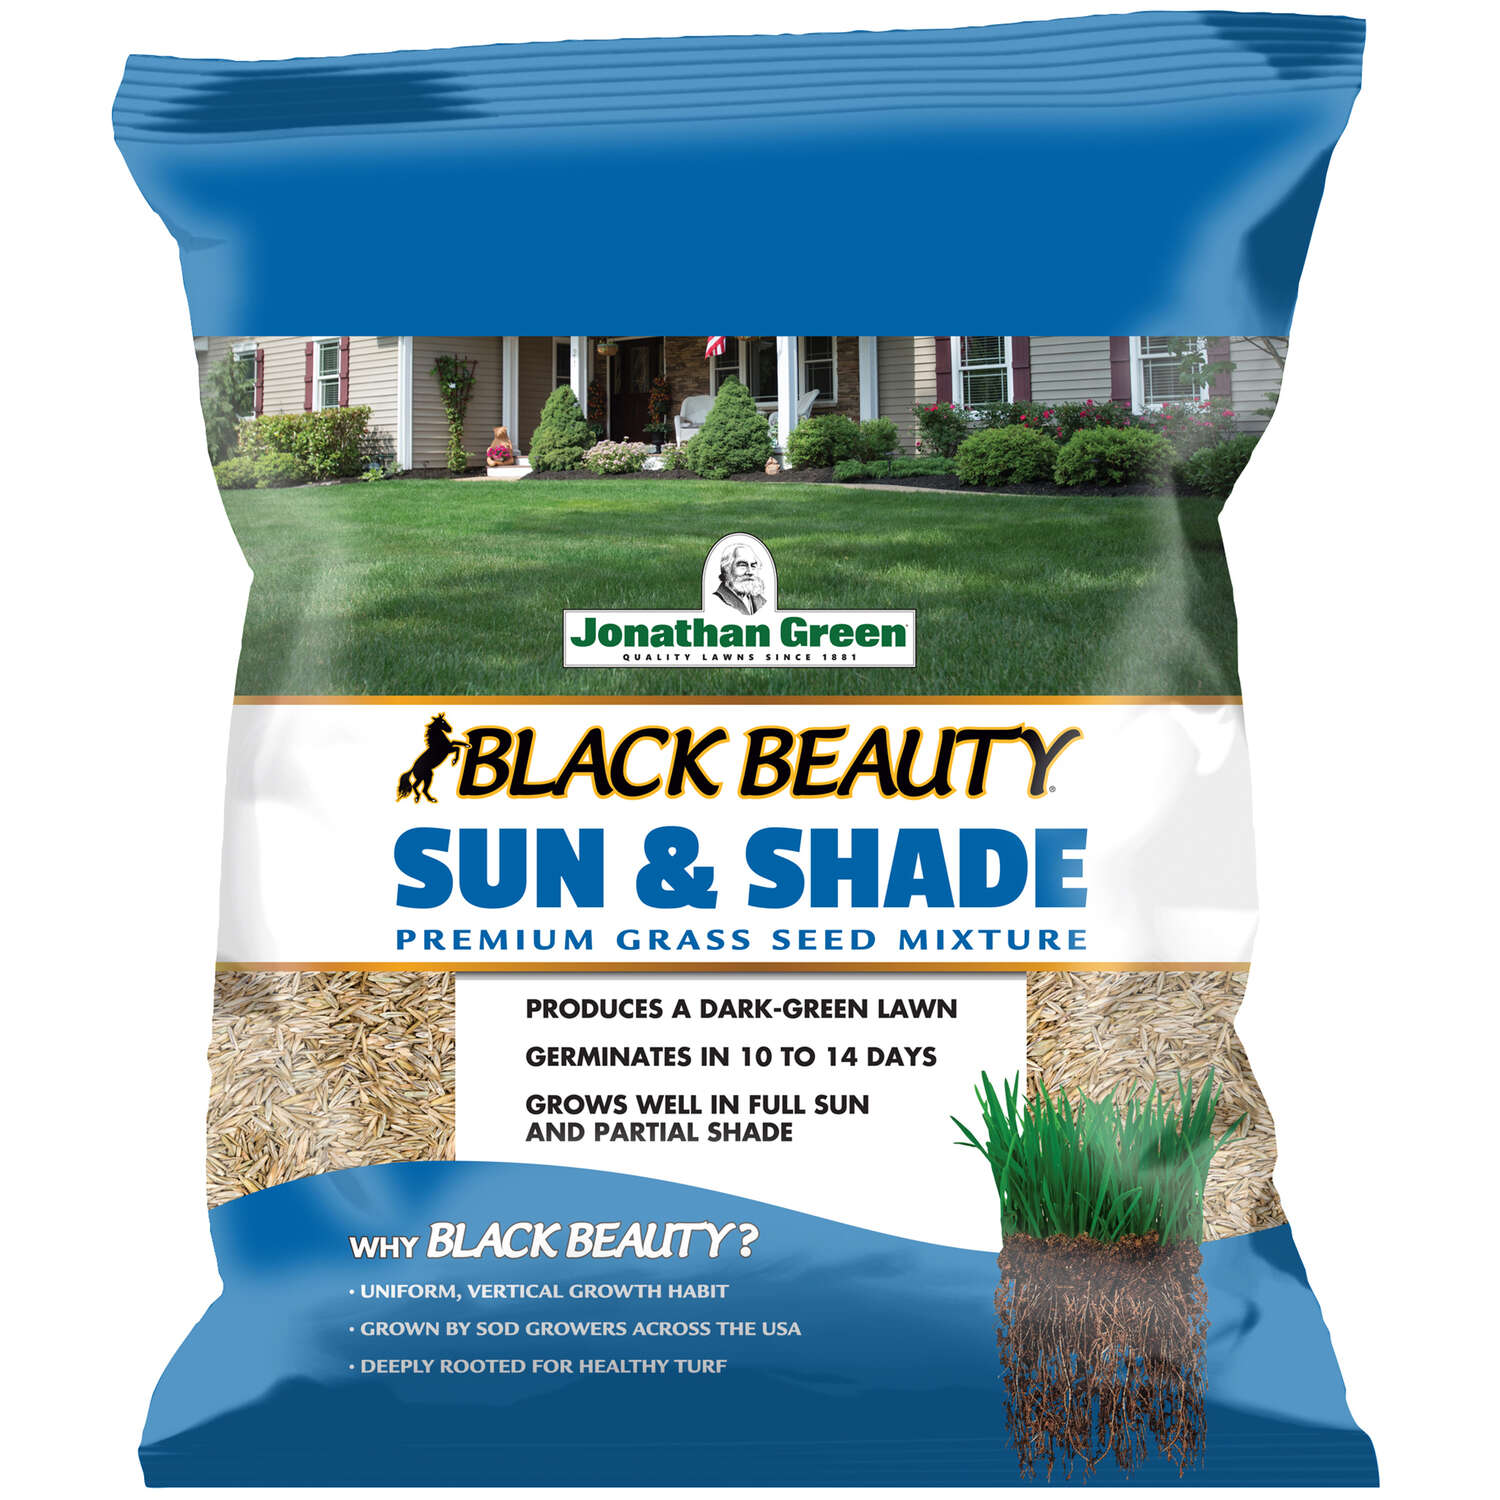 Jonathan Green Black Beauty Sun and Shade Mixed Sun/Partial Shade Grass Seed 3 lb.